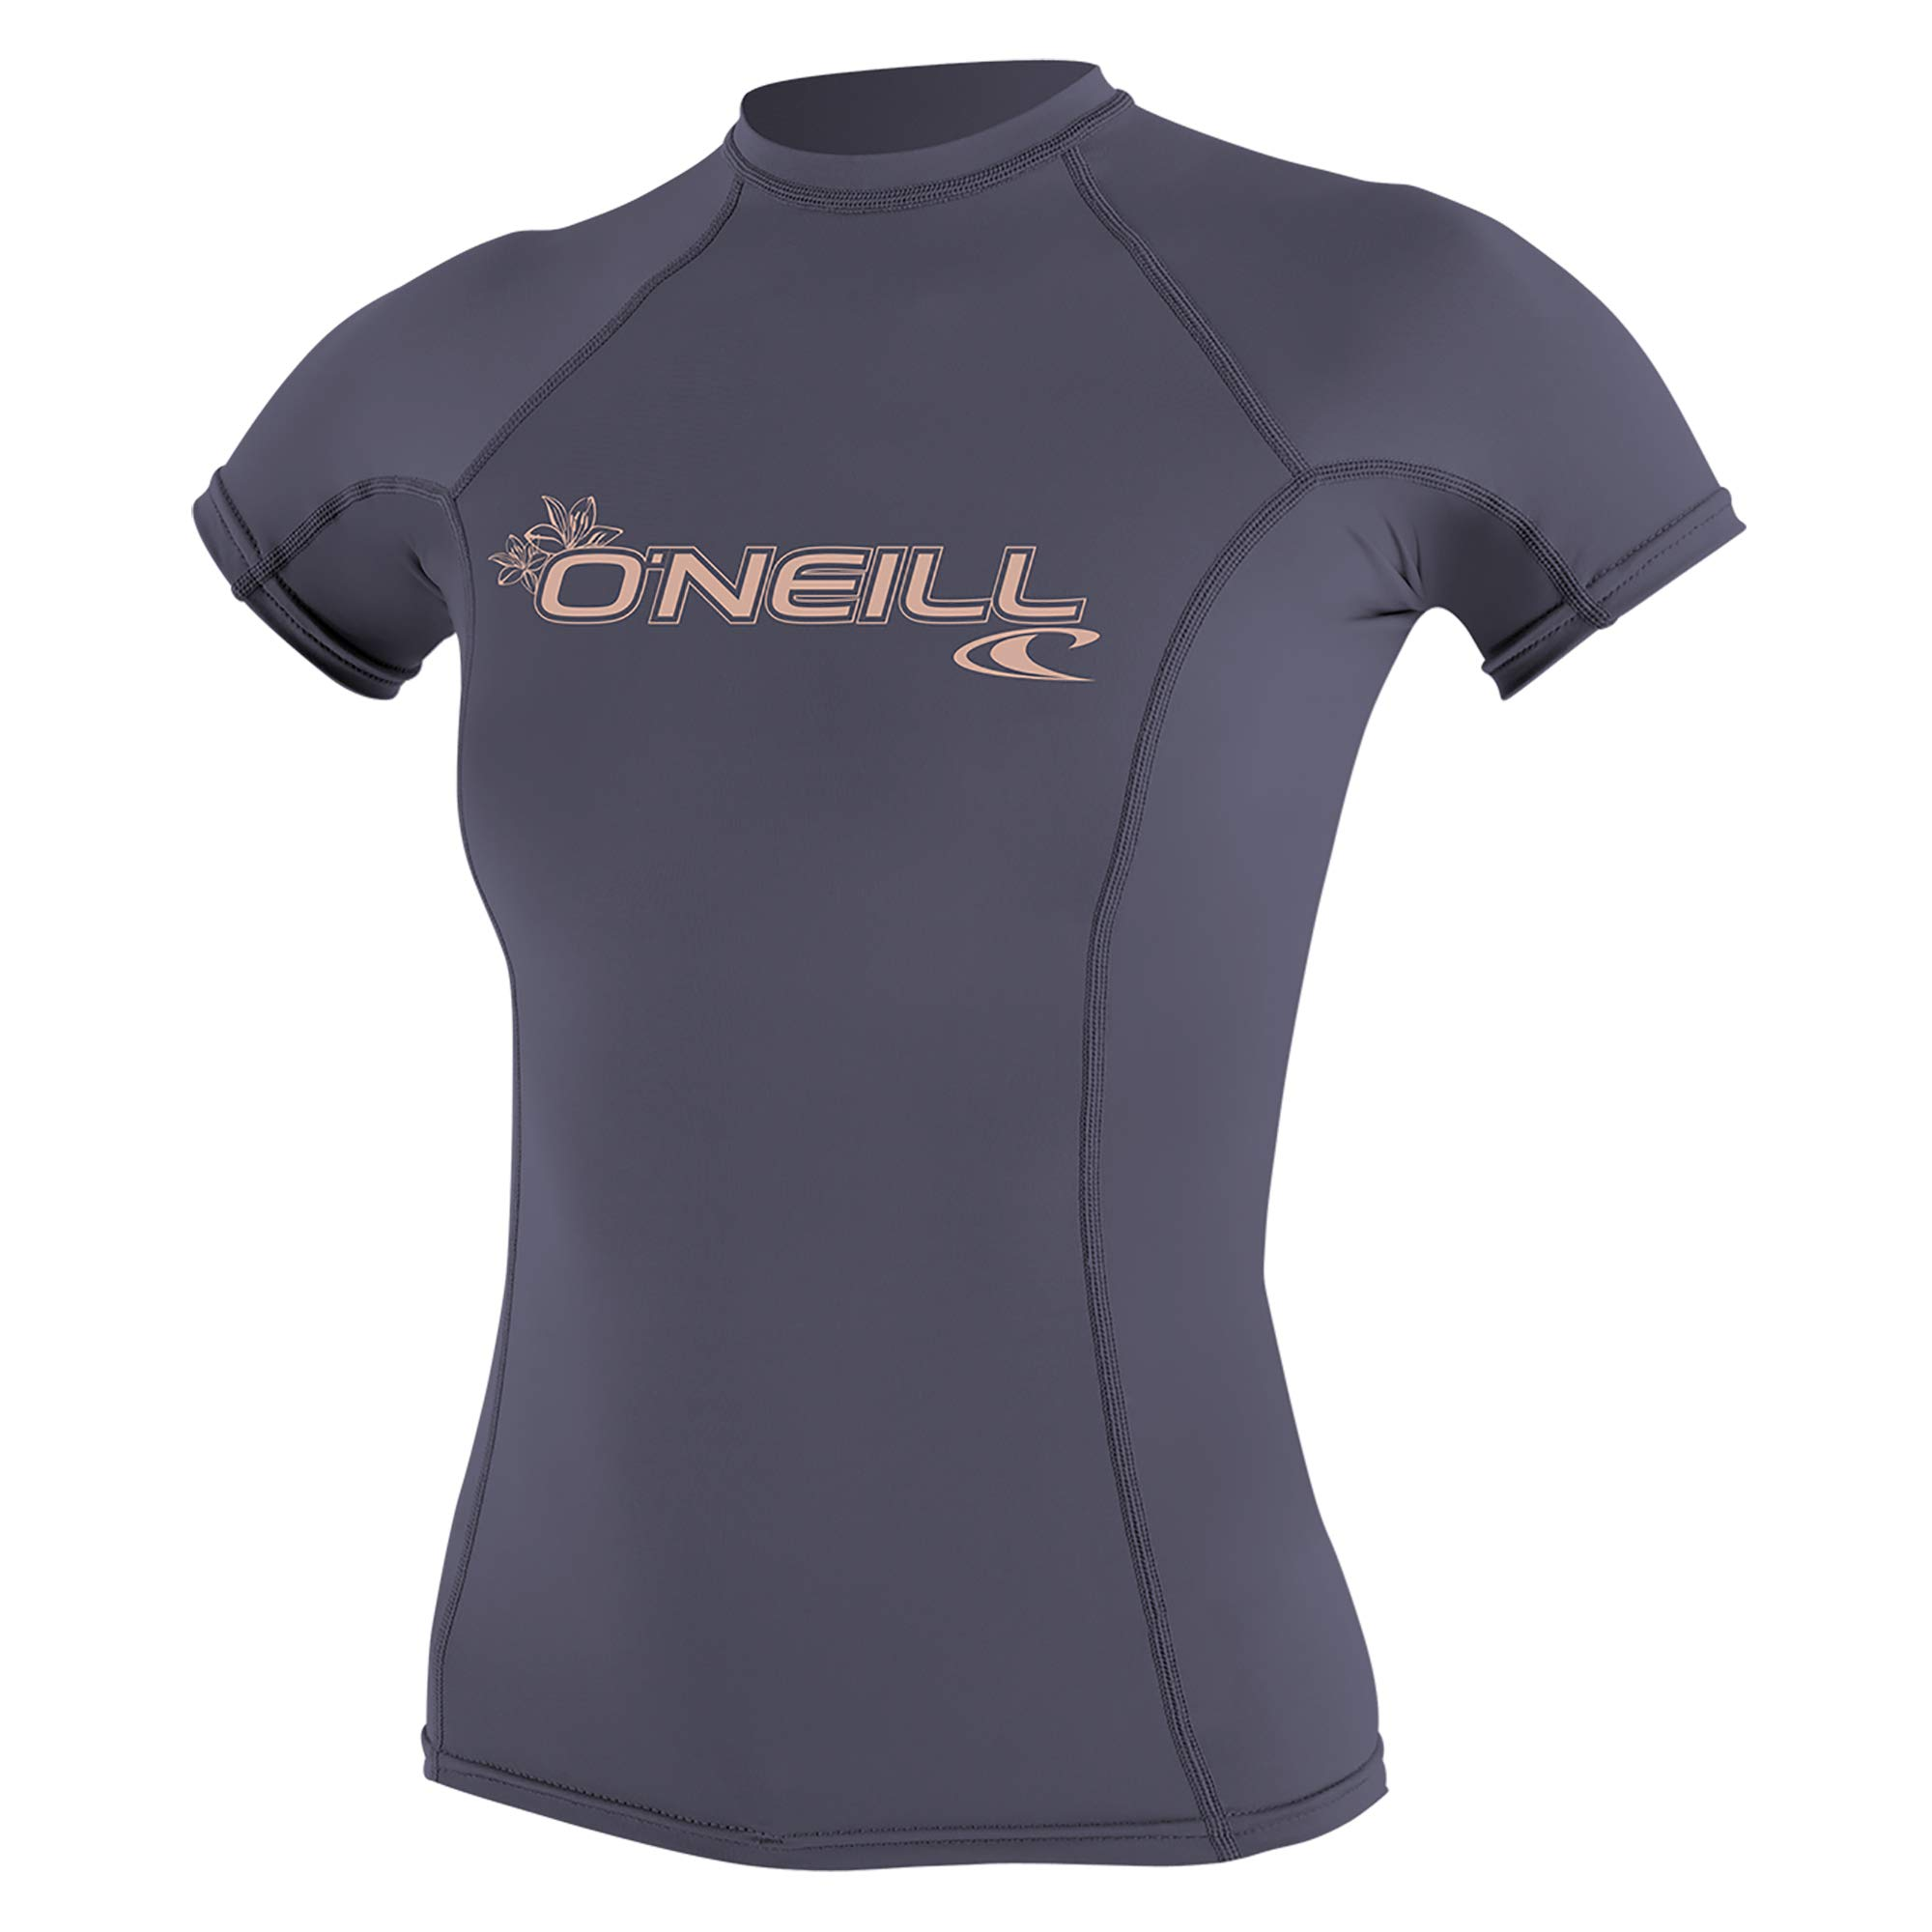 O'Neill Women's Basic 50+ Skins Short Sleeve Rash Guard, Dusk, Large by O'Neill Wetsuits